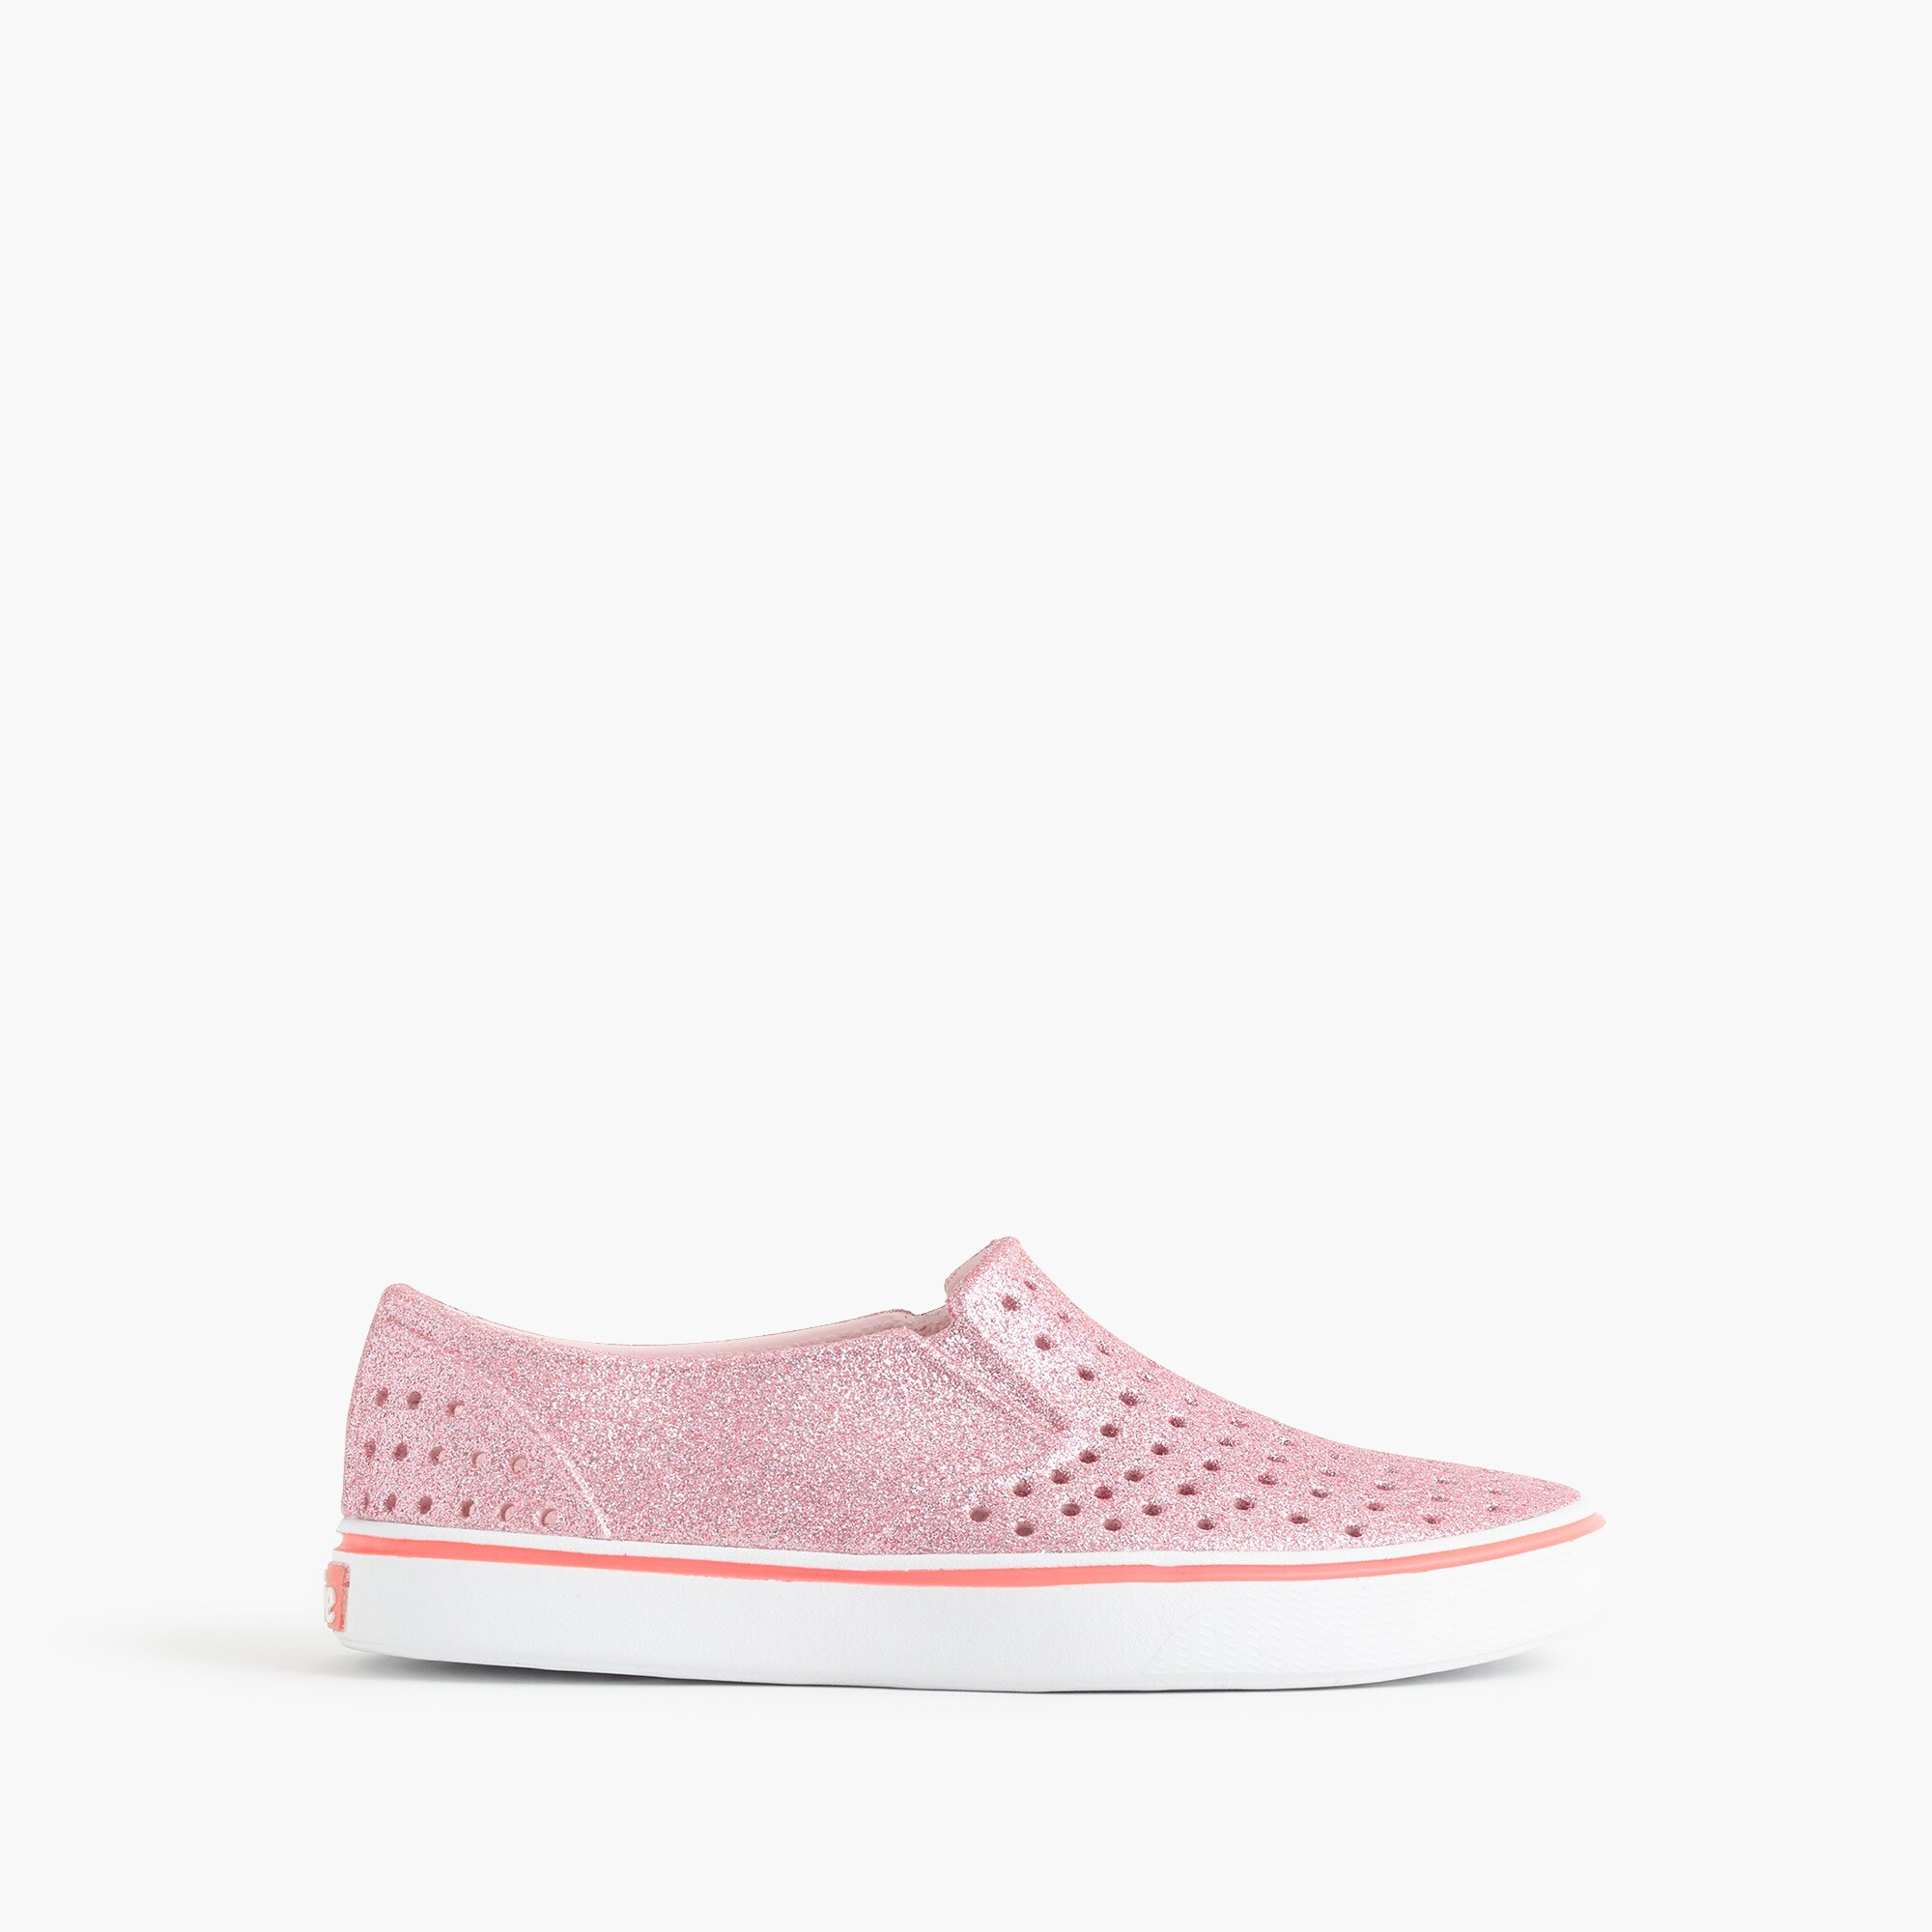 Girls' Native™ for crewcuts miles slip-ons in larger sizes girl shoes & sneakers c